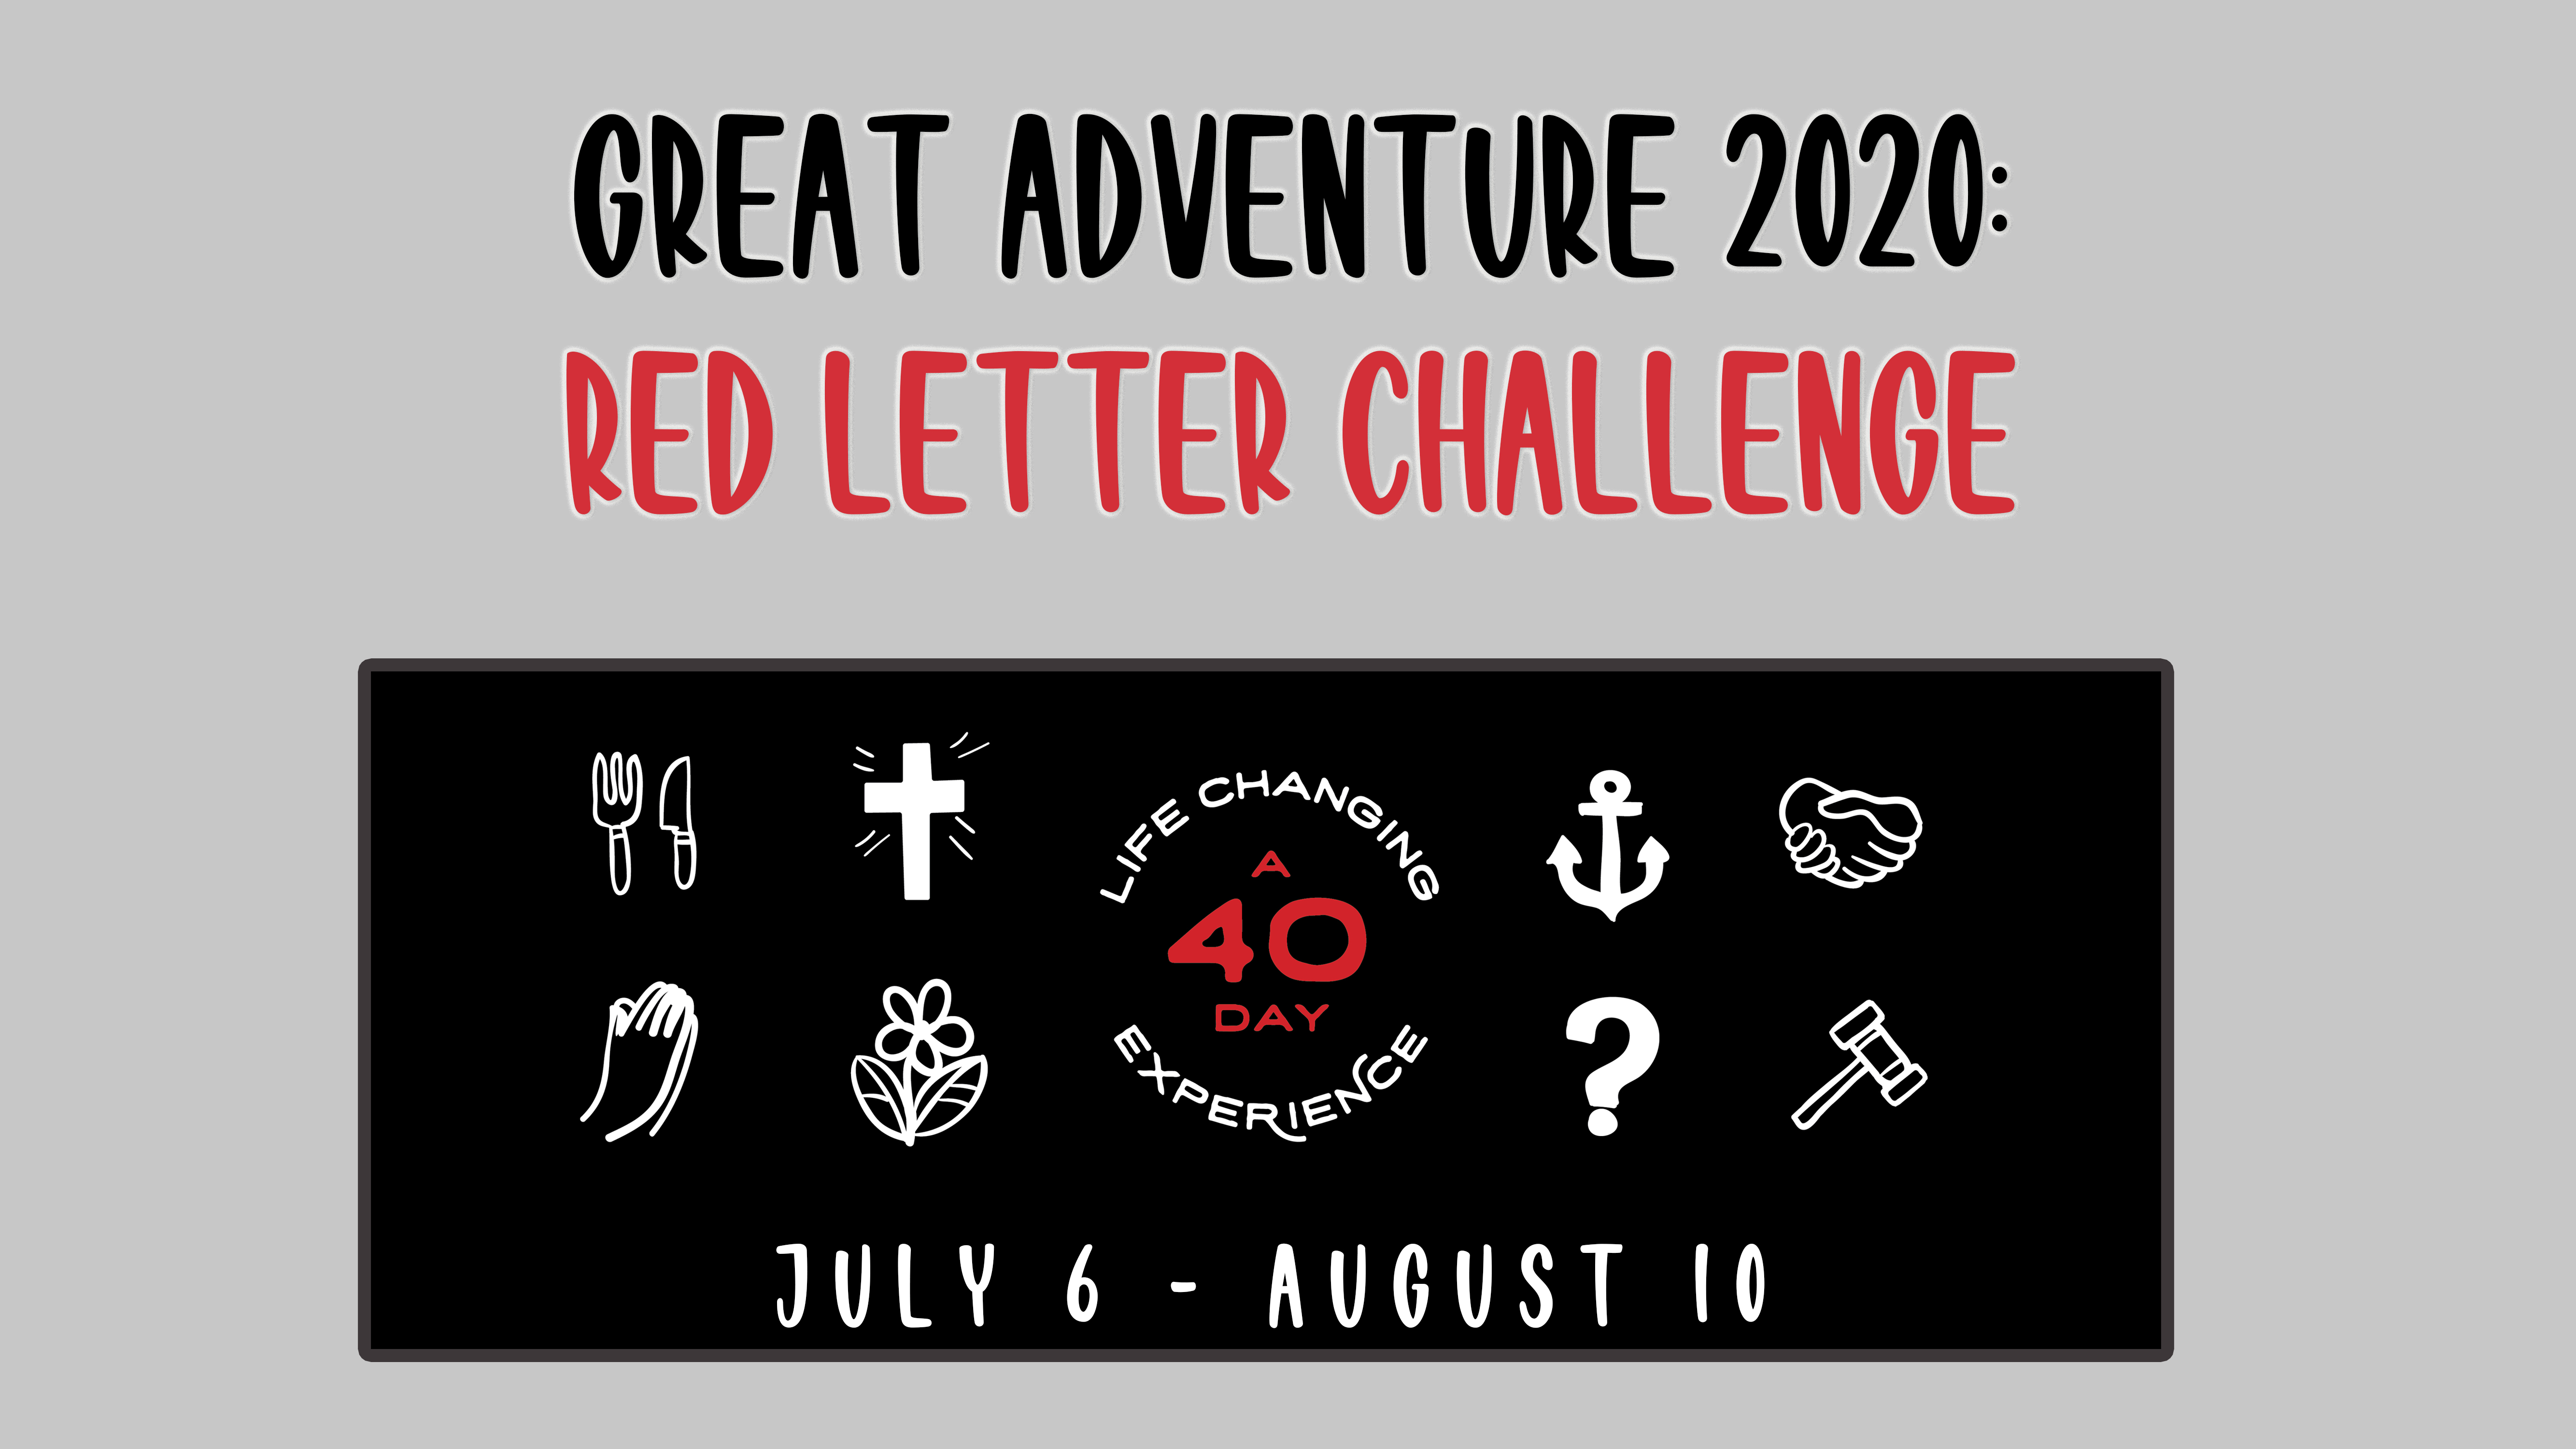 Great Adventure 2020 - Red Letter Challenge